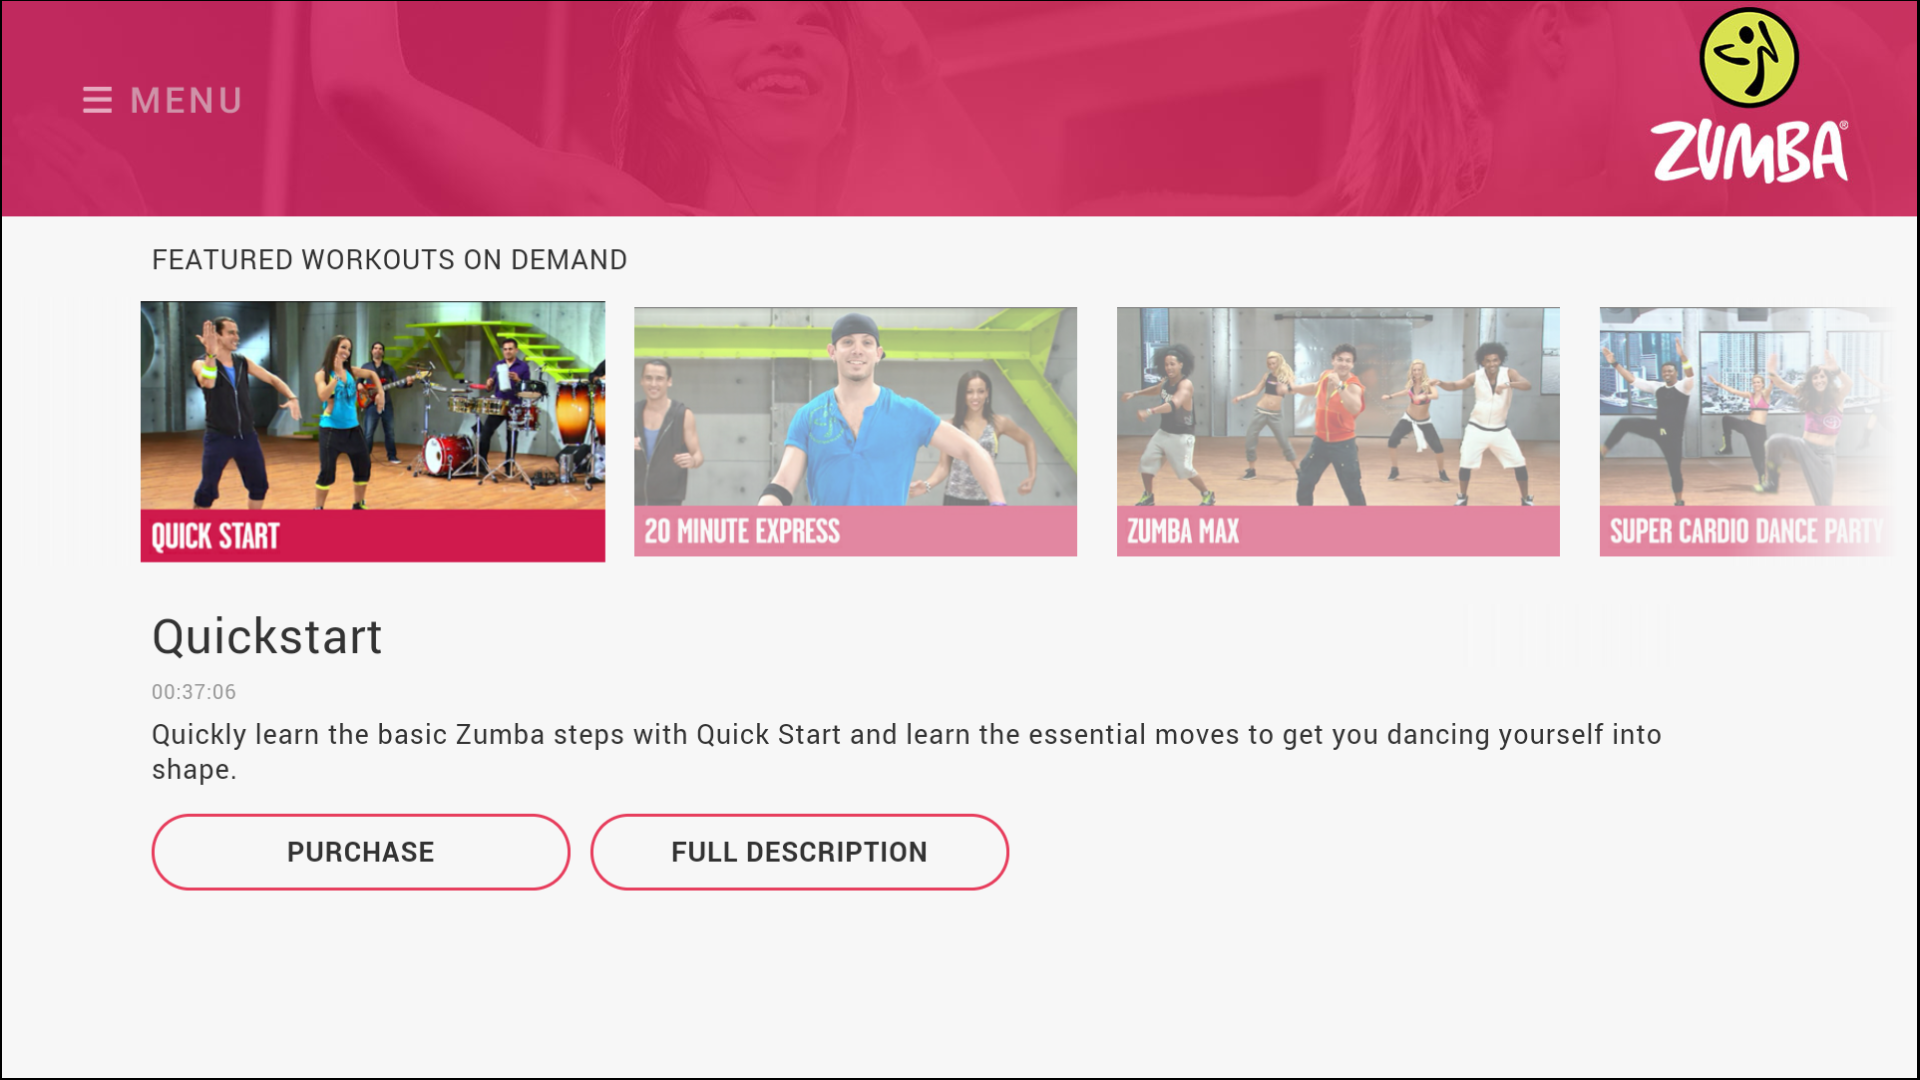 Amazon.com: Zumba Fitness: Appstore for Android